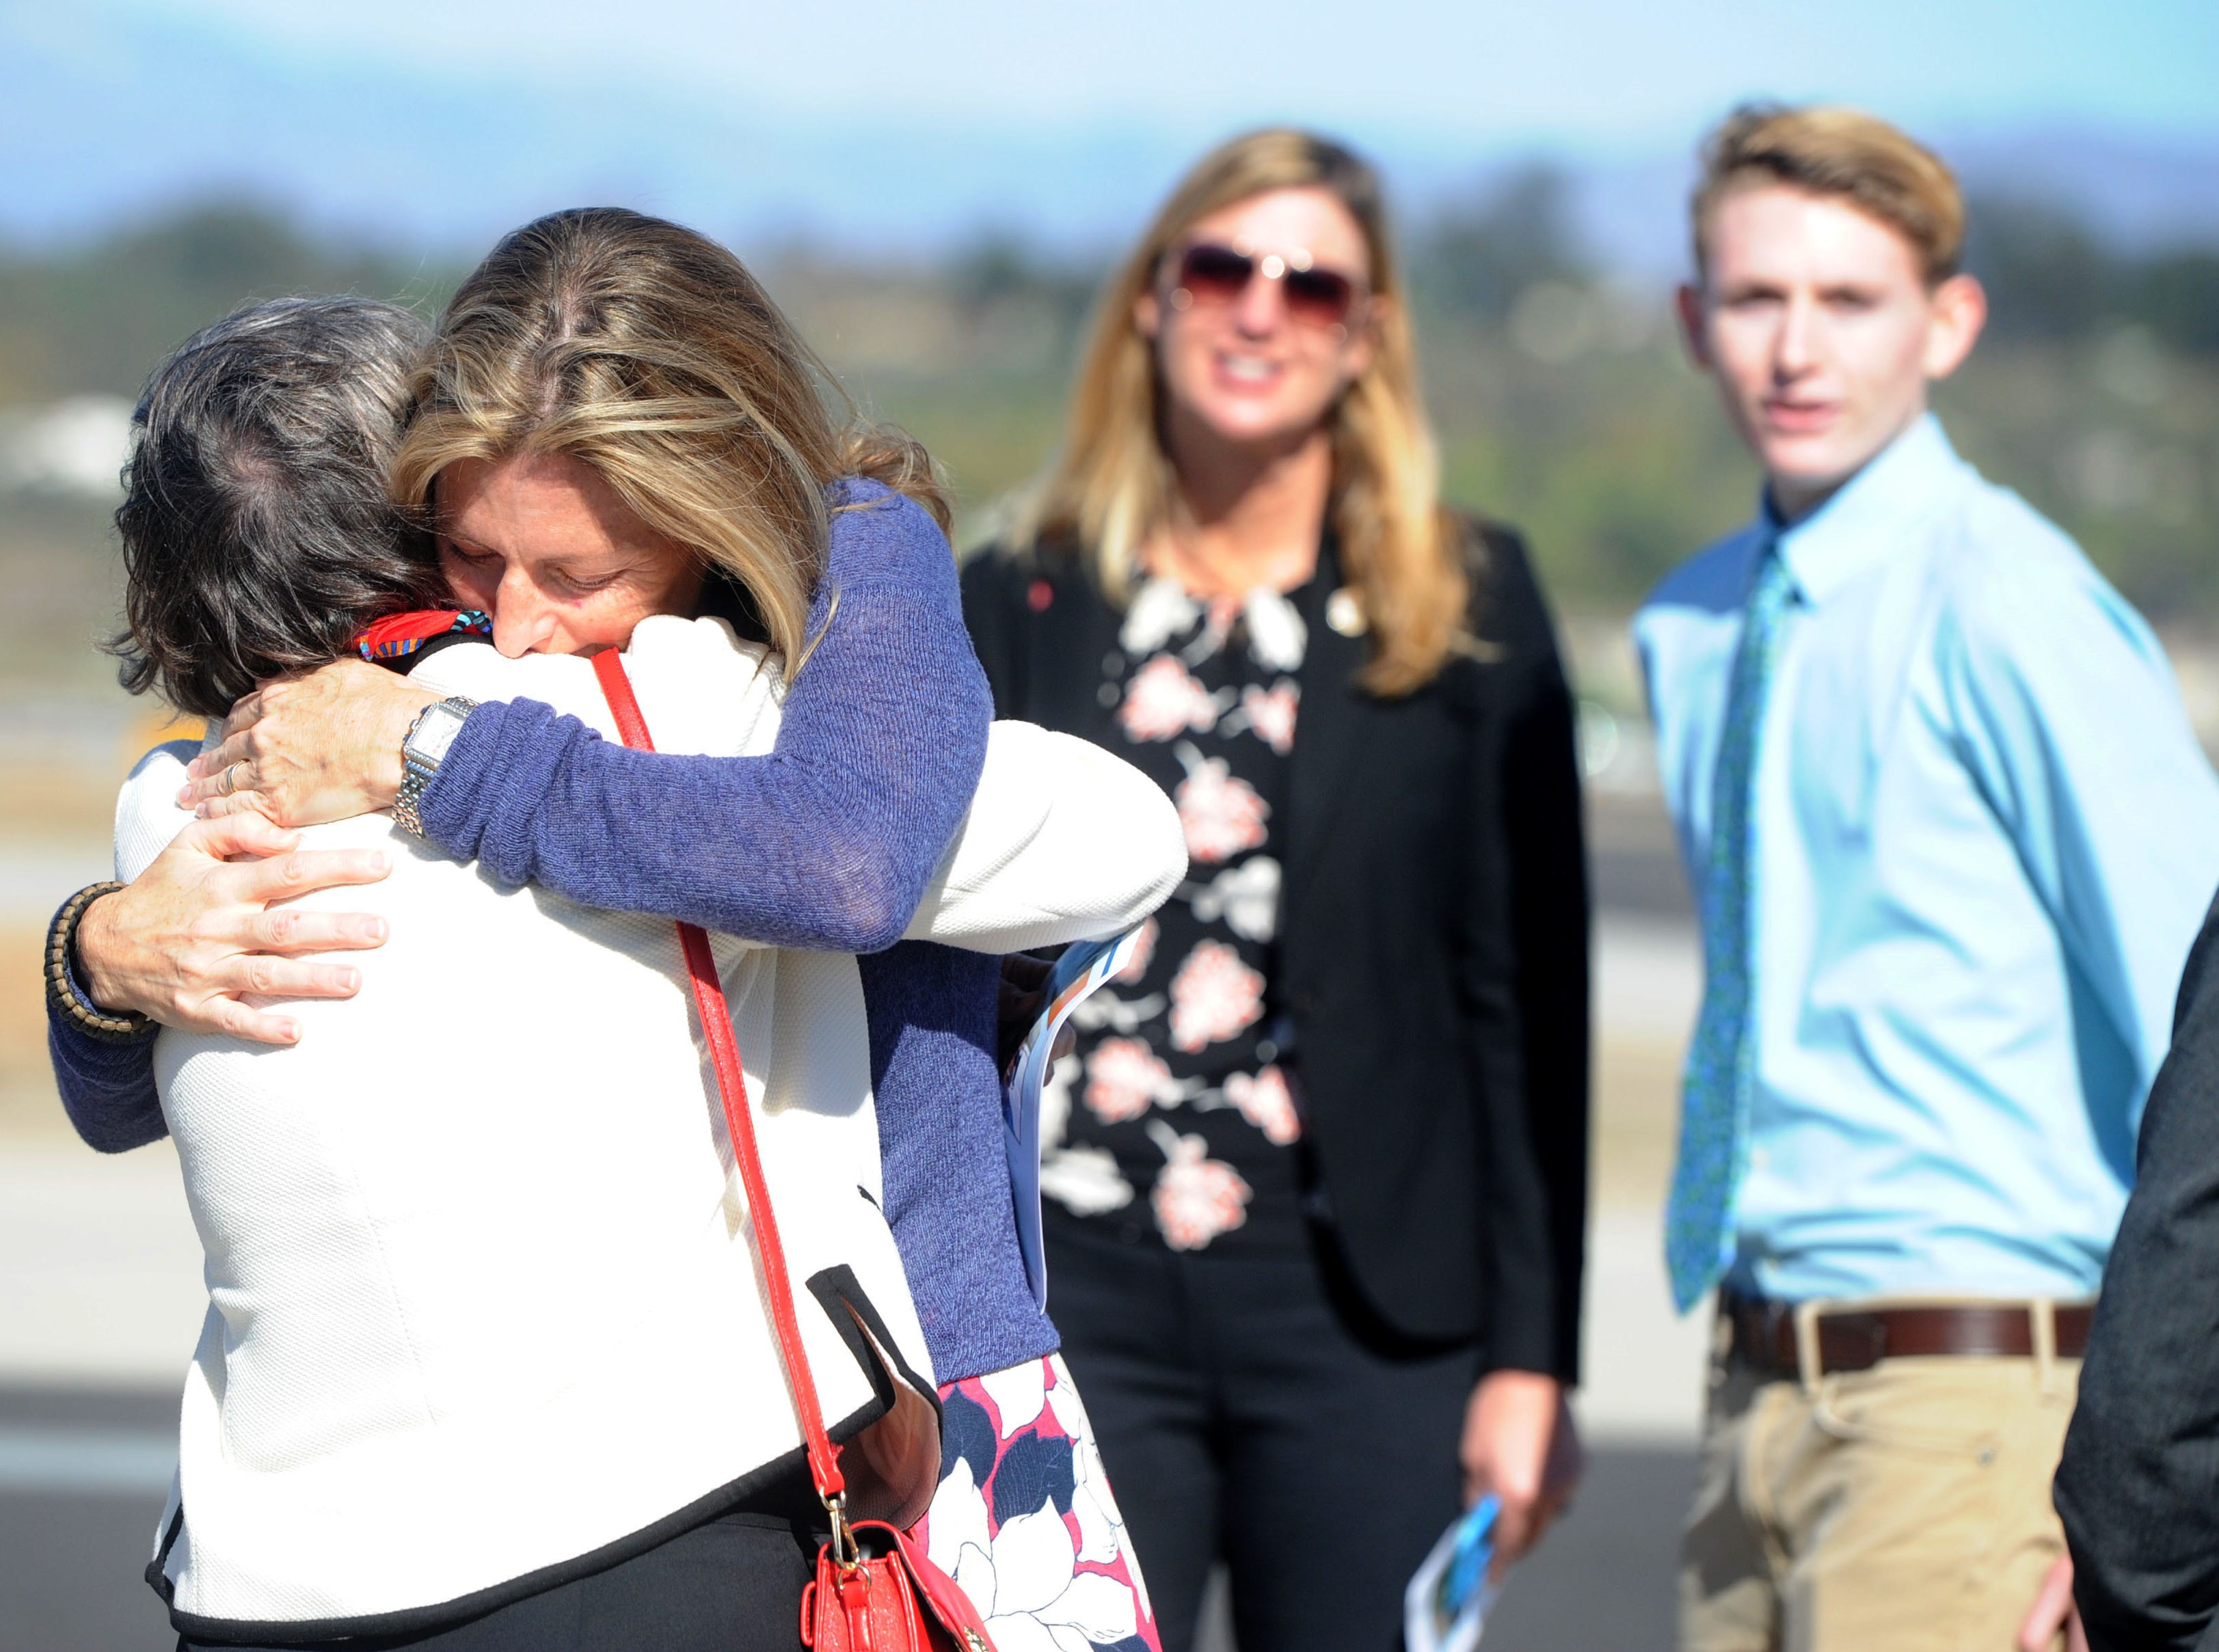 Ann McNamee hugs people at a ceremony remembering her late husband, Todd McNamee, at the Camarillo Airport.